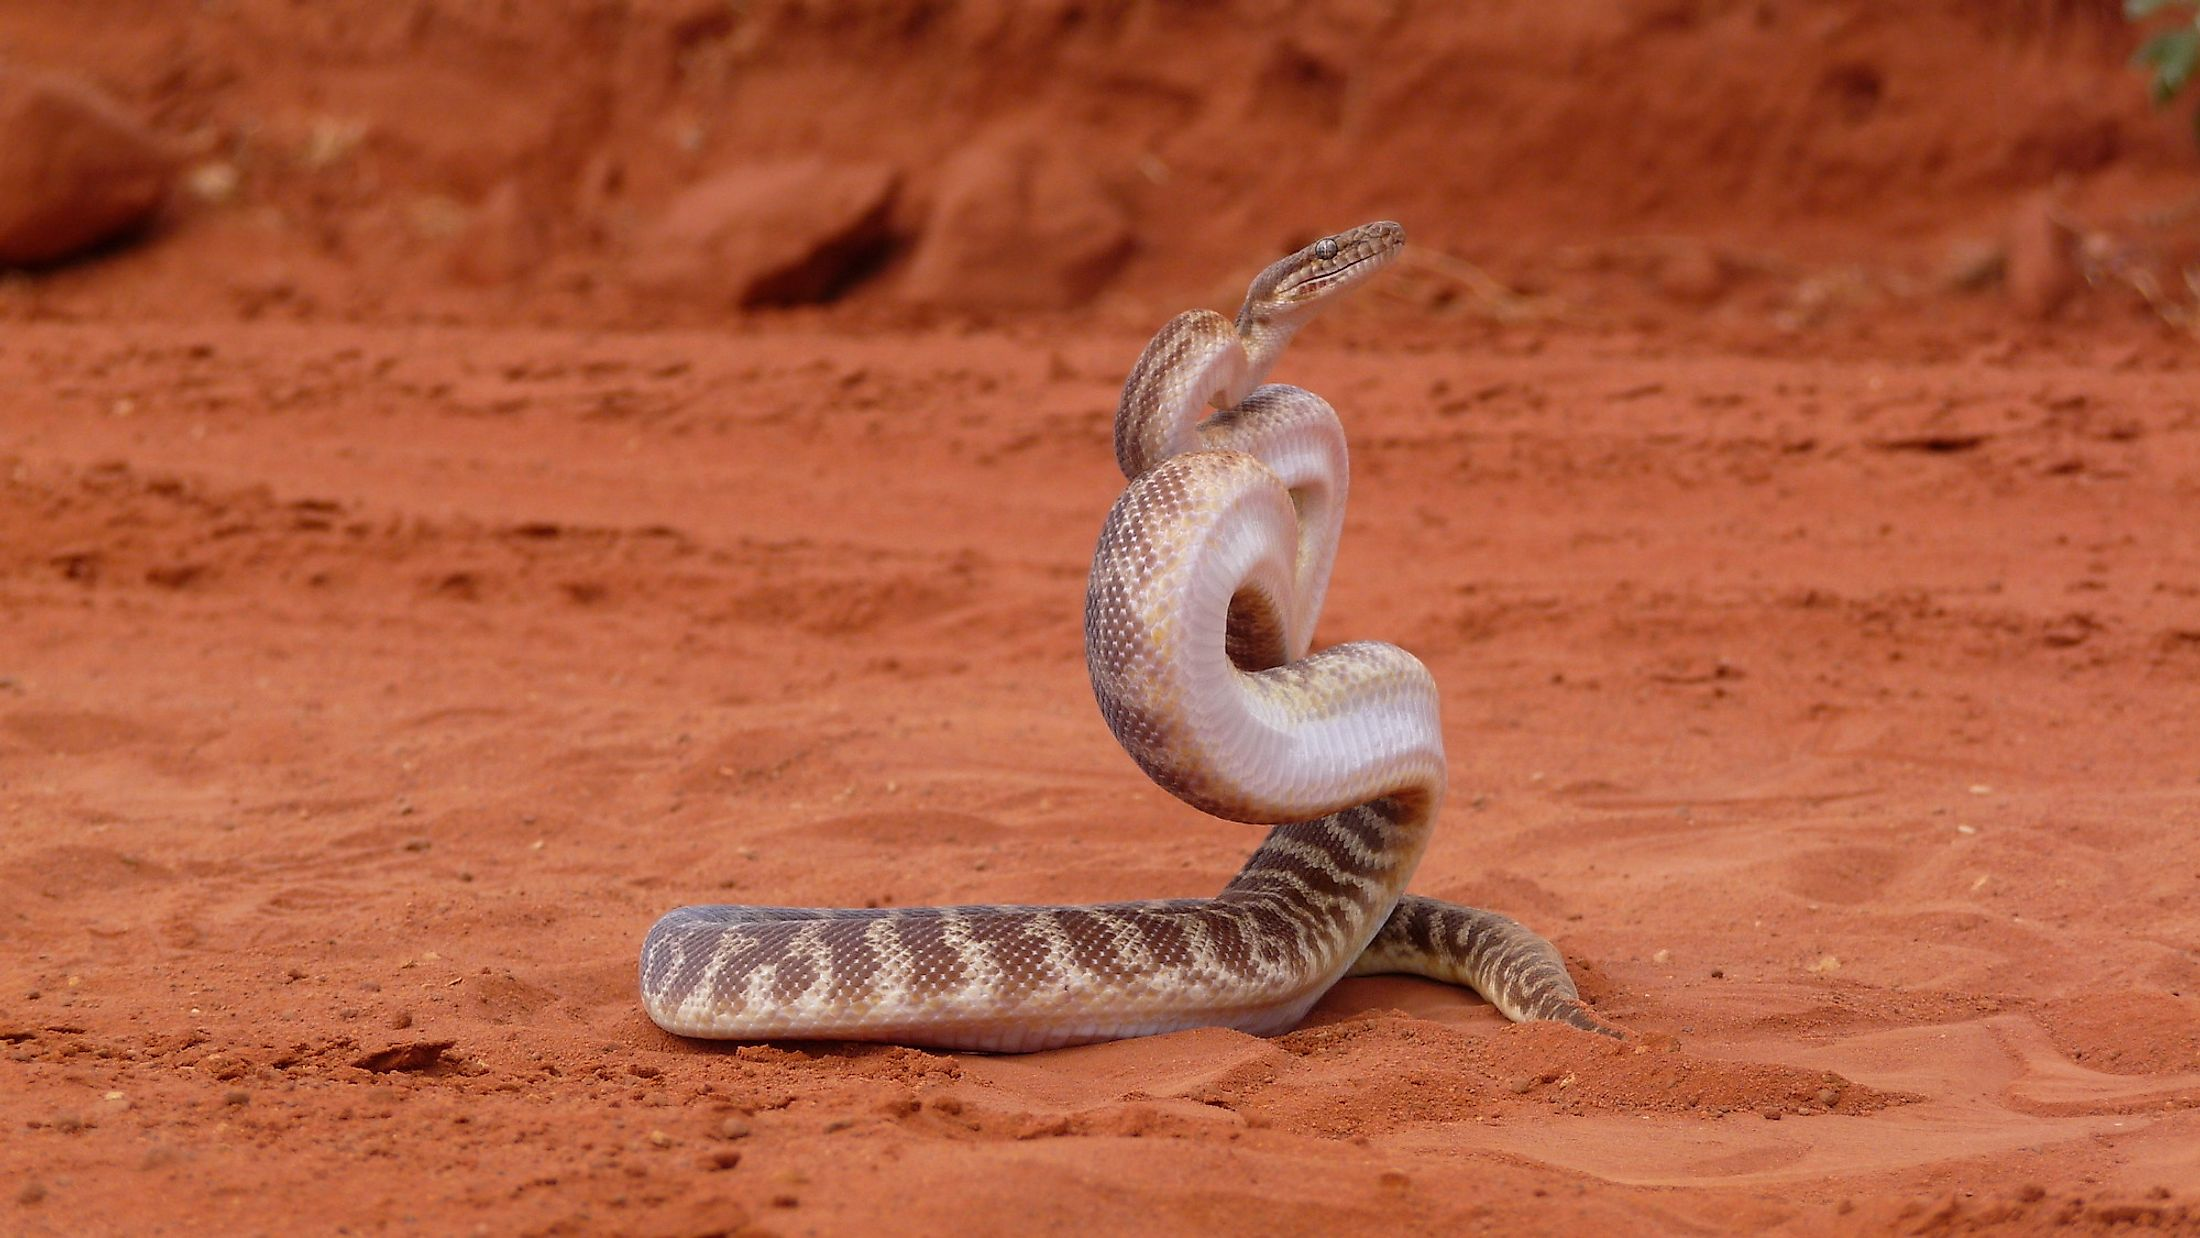 A Stimson's Python strikes a defensive pose in the Australian outback. Image credit: Chris Watson/Shutterstock.com